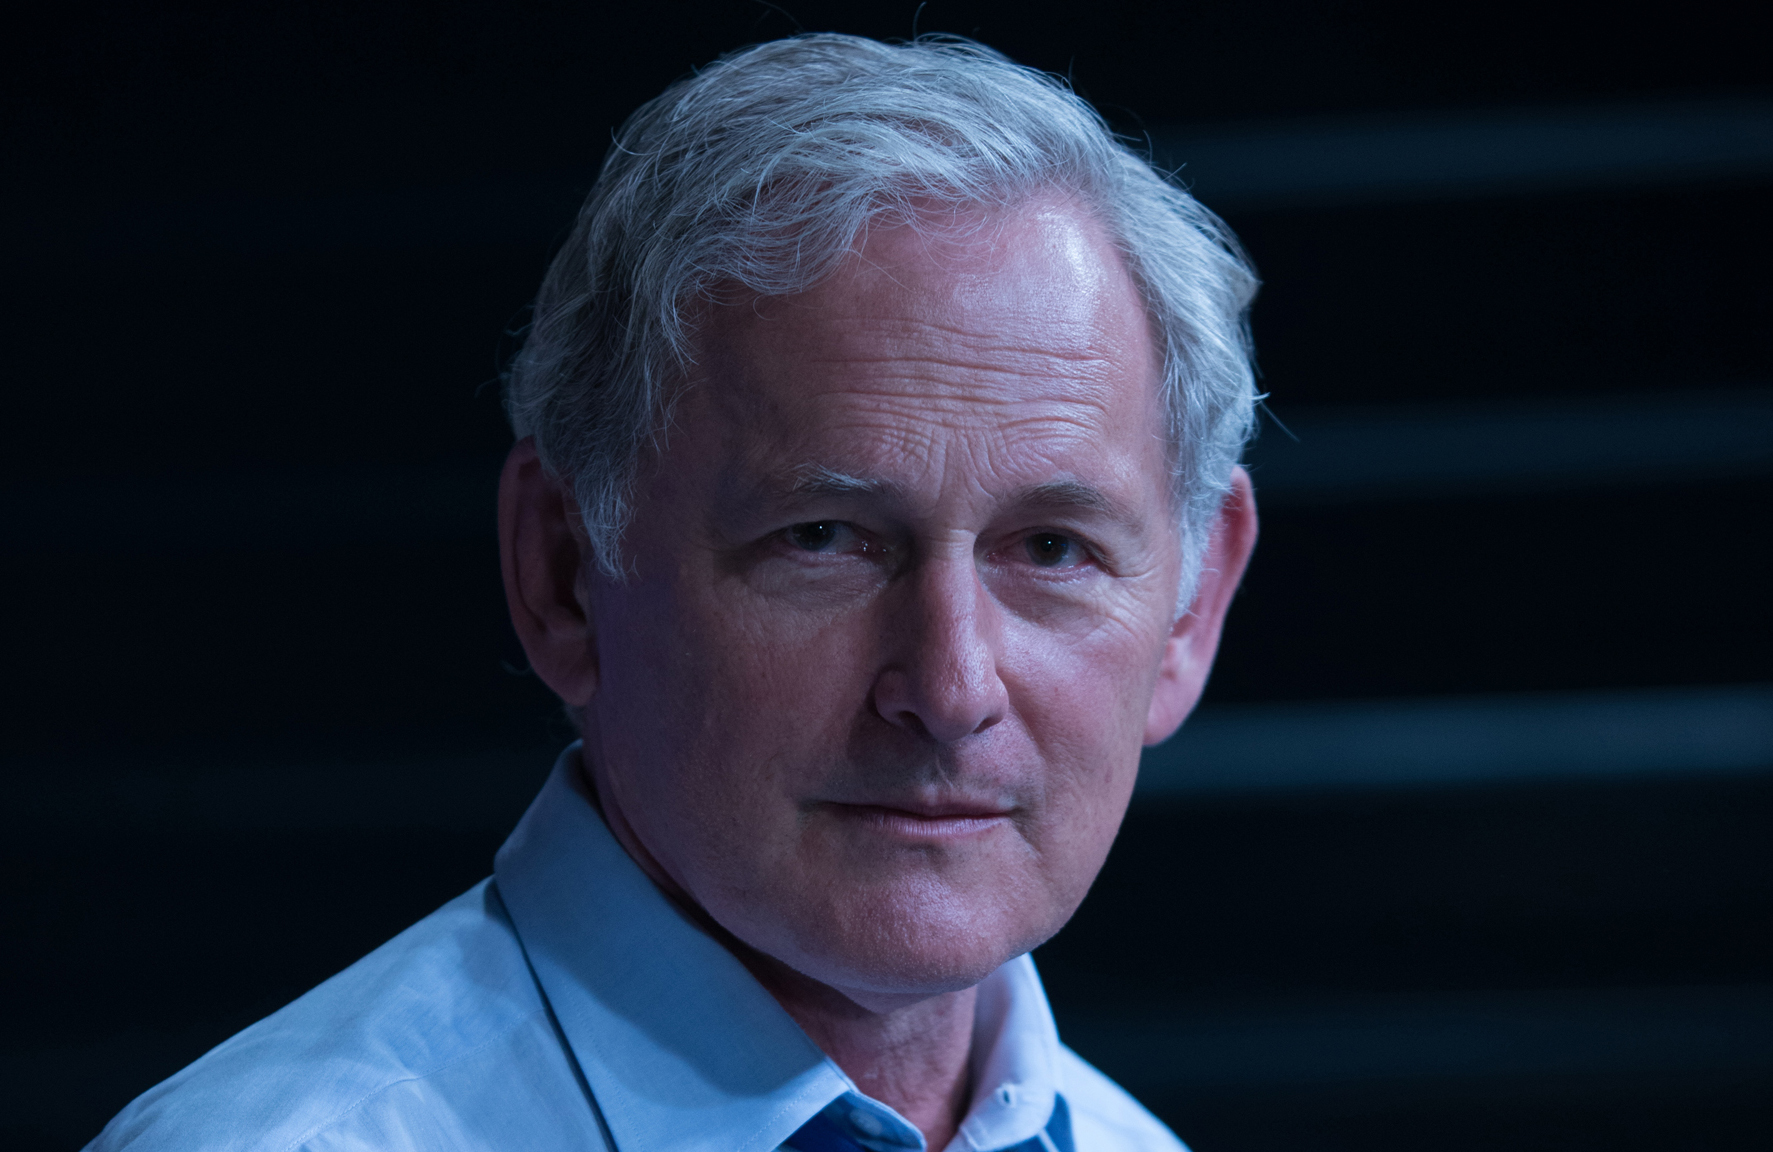 Exclusive A Flash Of Victor Garber In Two Features